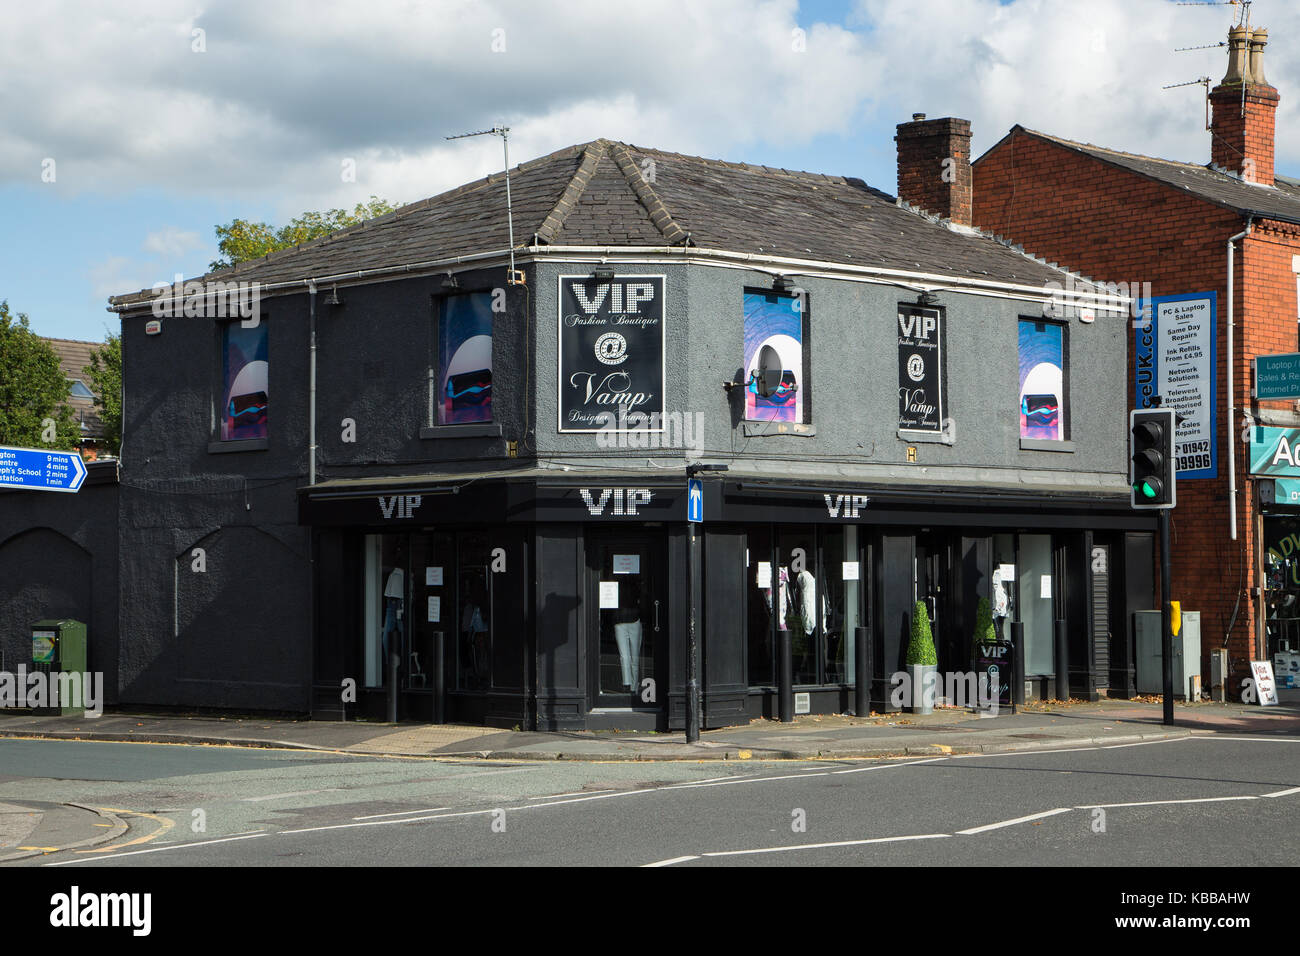 Vamp tanning shop In Leigh, England, UK - Stock Image